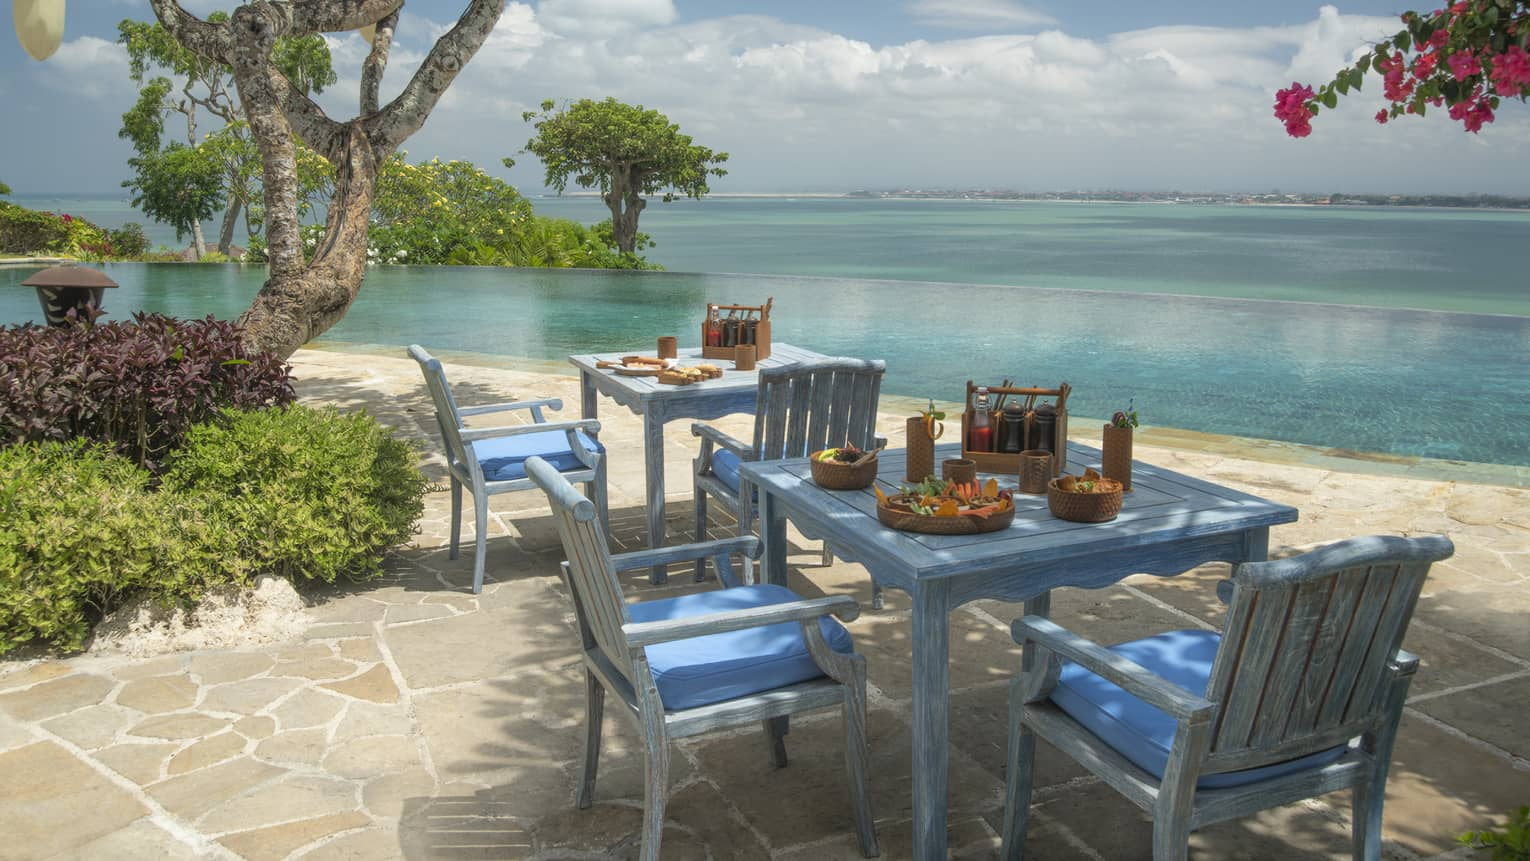 Alu Restaurant blue tables and chairs on flagstone patio directly on beach